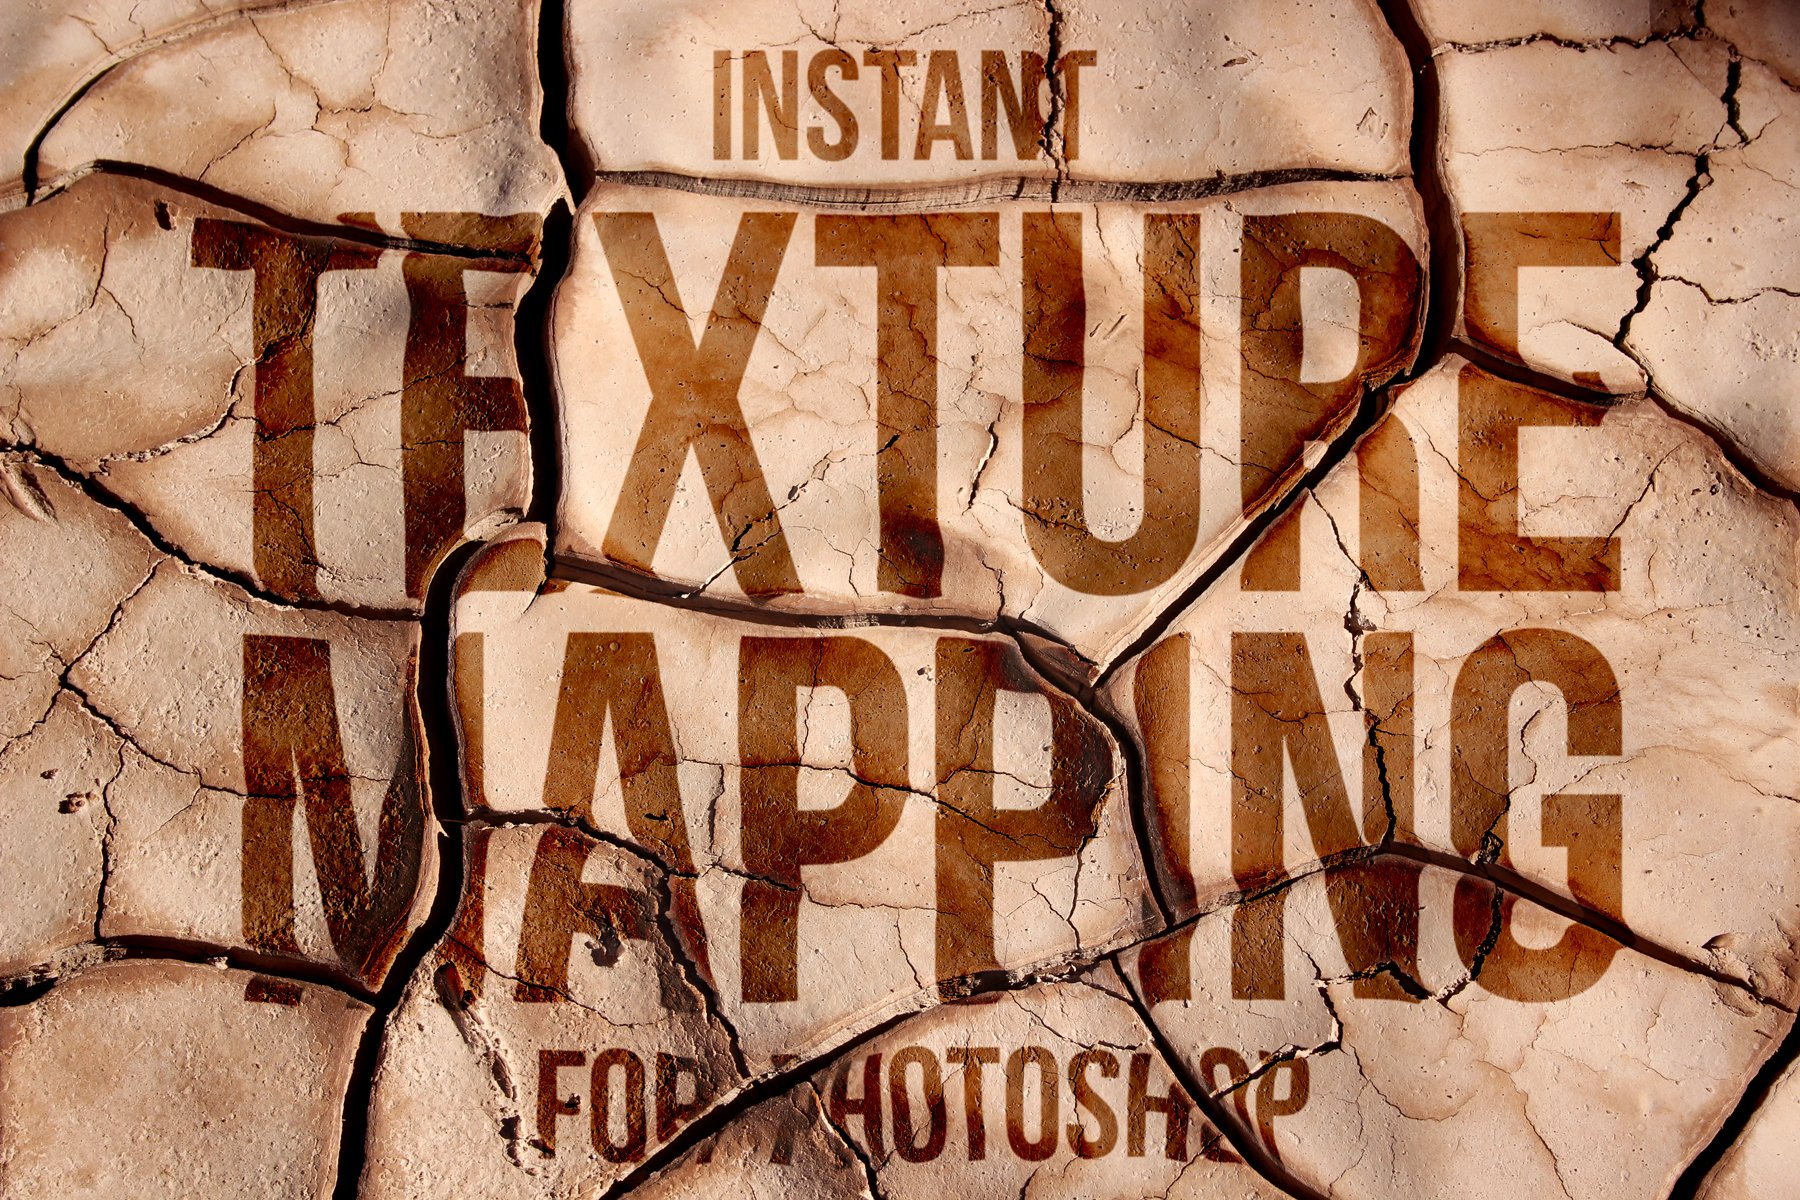 Instant photoshop texture mapping actions creative market ccuart Choice Image